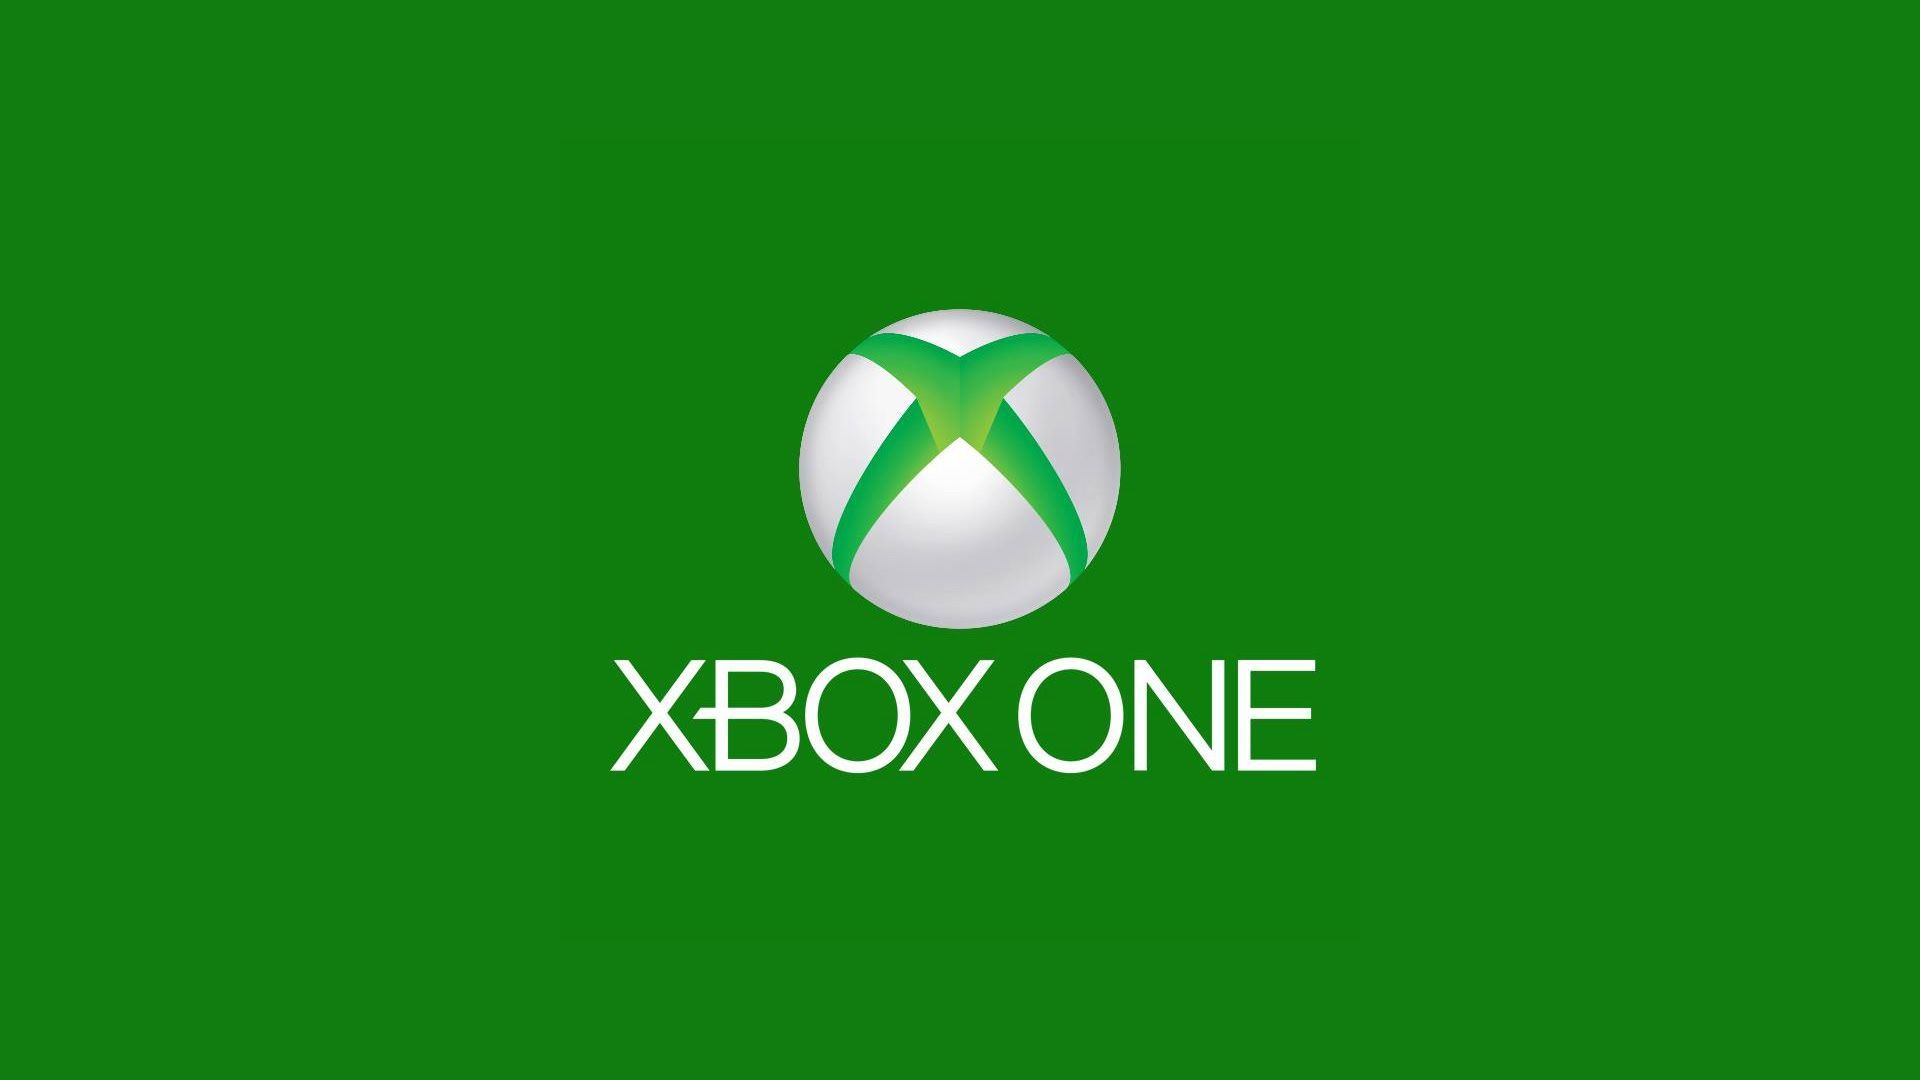 Xbox Logo Wallpapers Wallpaper Cave Xbox One System Xbox